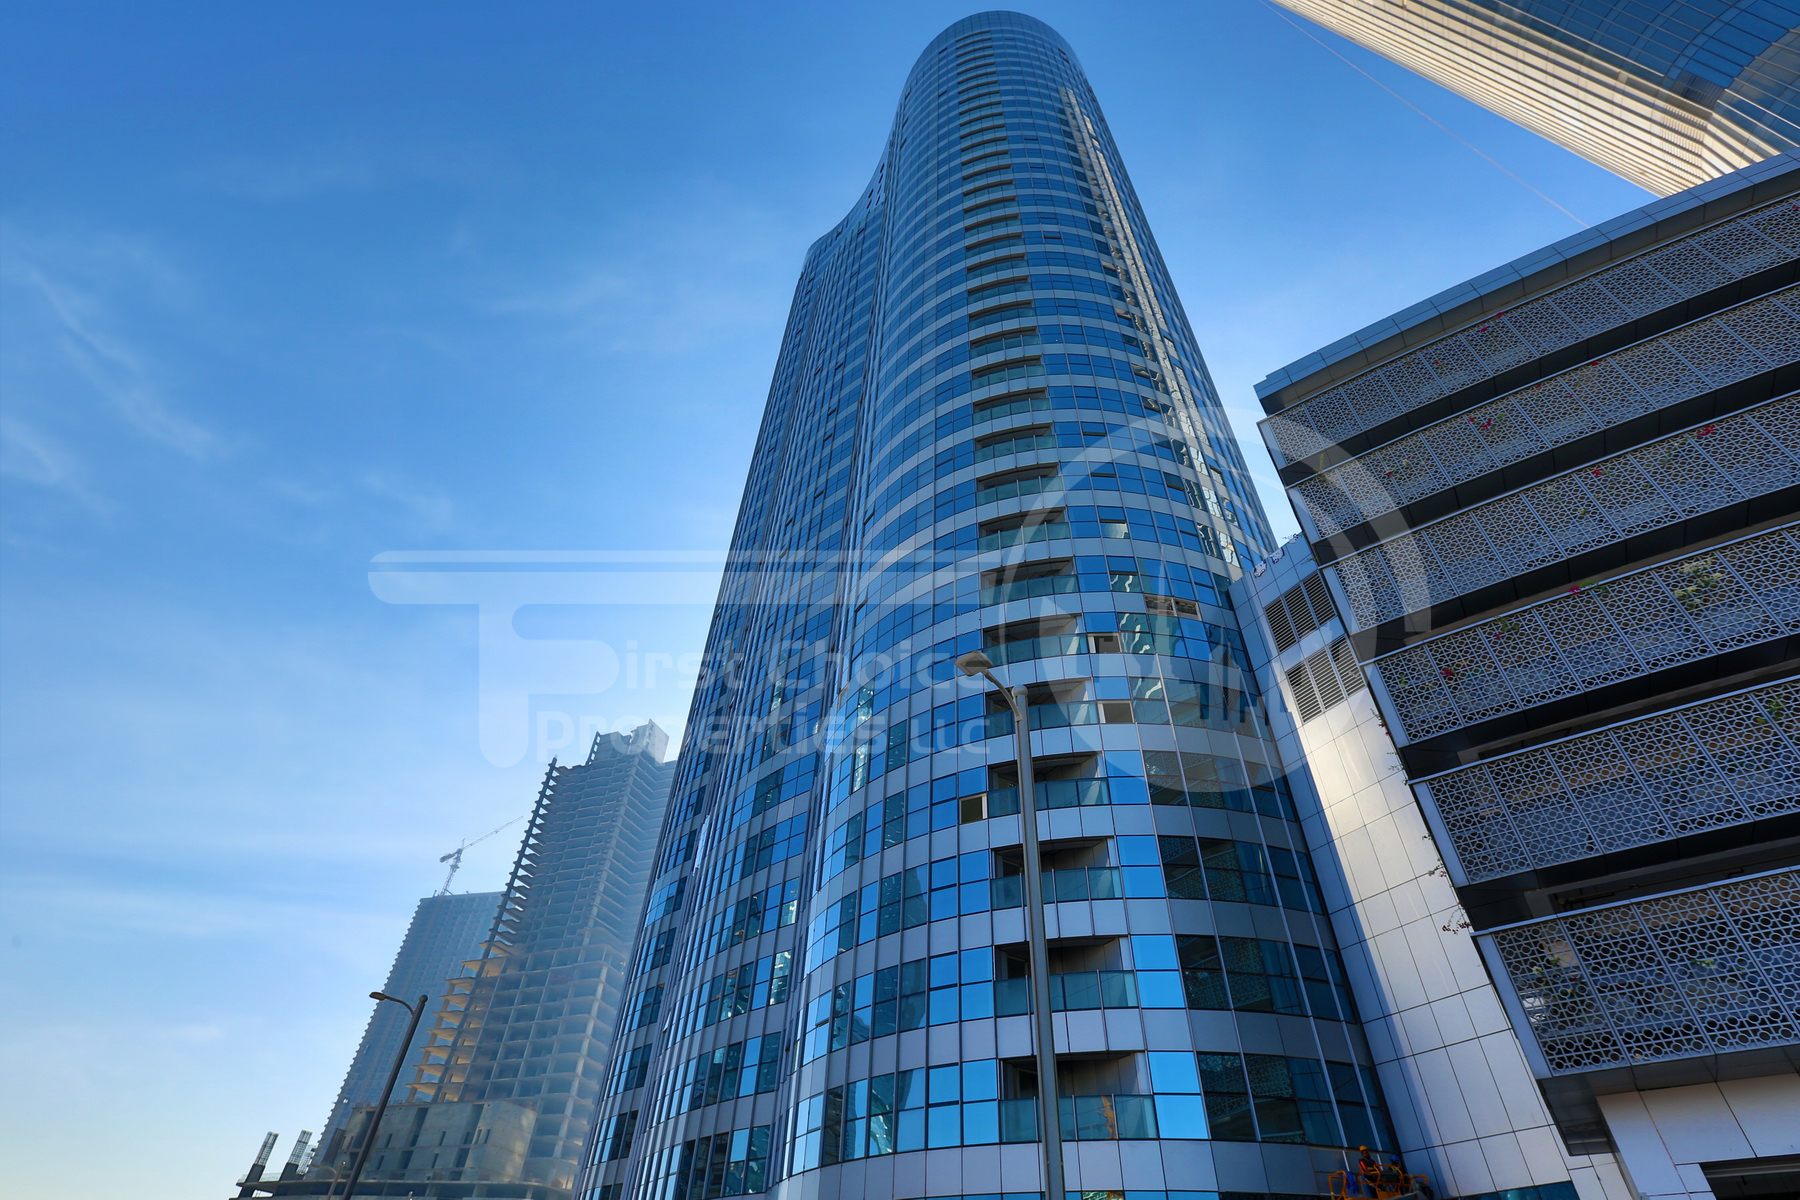 Studio - 1BR - 2BR - 3BR Apartment - Abu Dhabi - UAE - Al Reem Island - City of Lights - C2 Building - C3 Building - Outside View (1).JPG